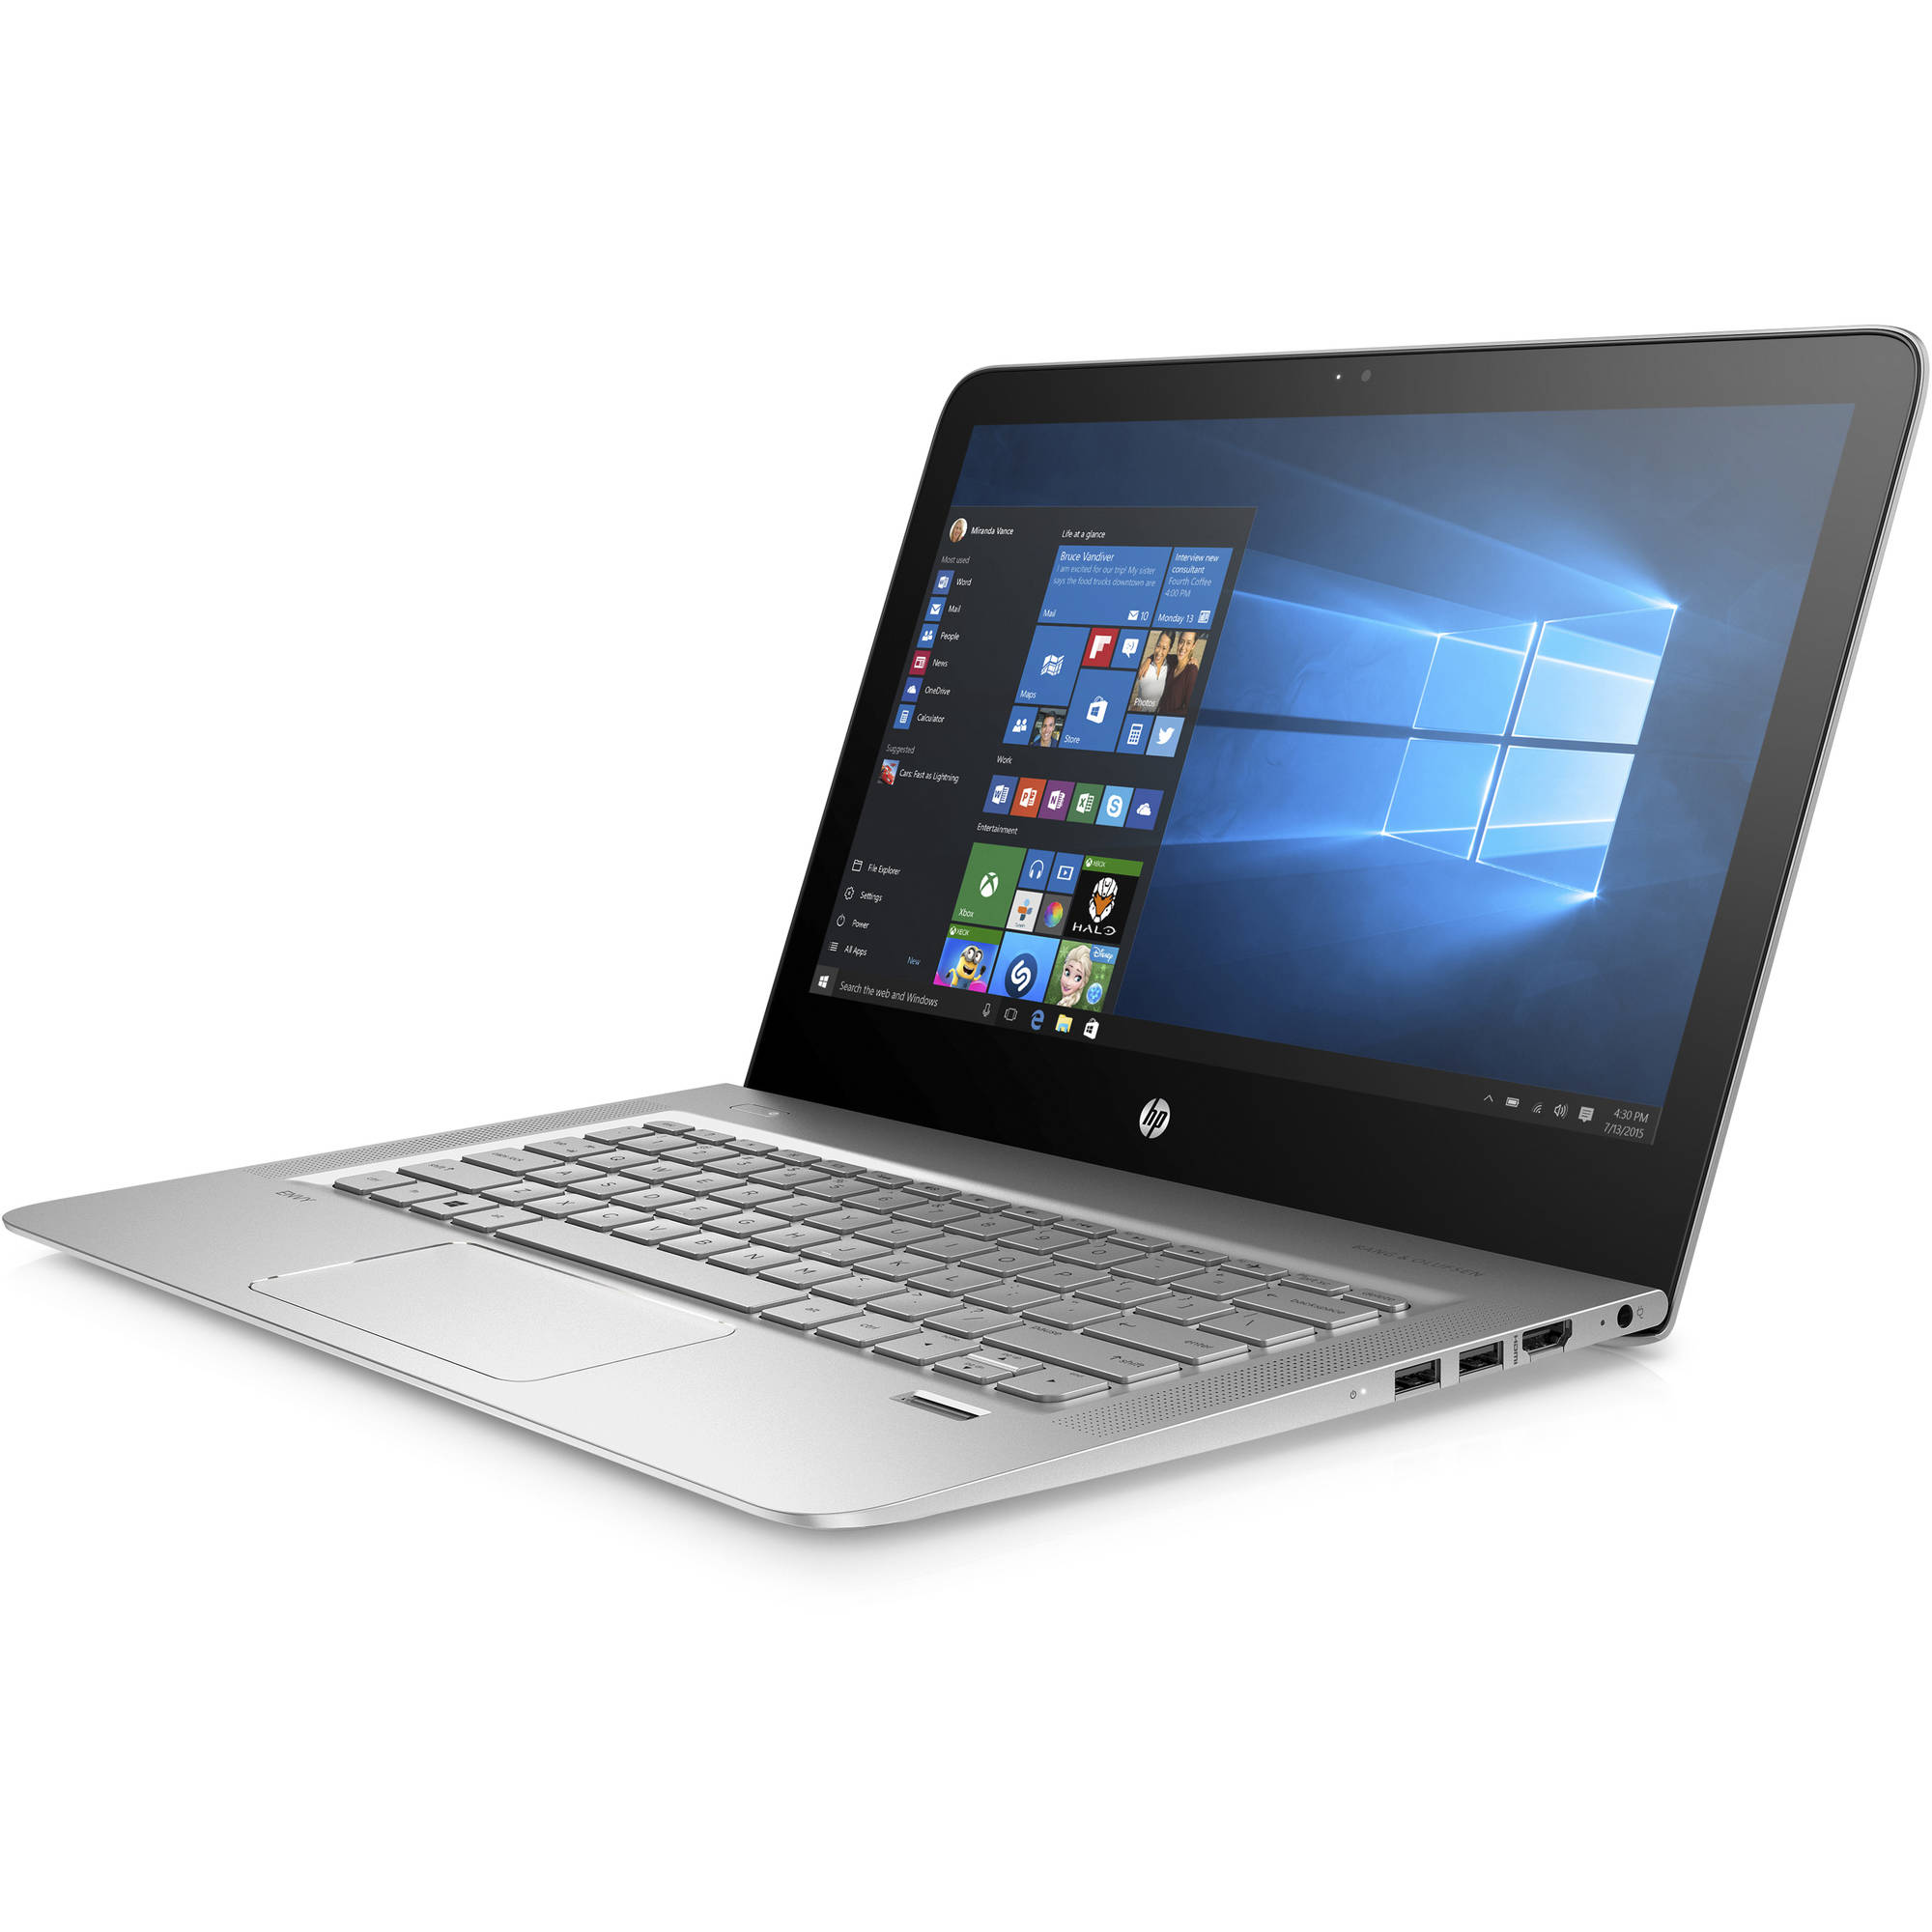 "HP Envy 13-d040wm 13.3"" Laptop,  Quad HD+ Display, Windows 10, Intel Core i7-6500U Processor, 8GB Memory, 256GB  Solid State Drive, Natural Silver"